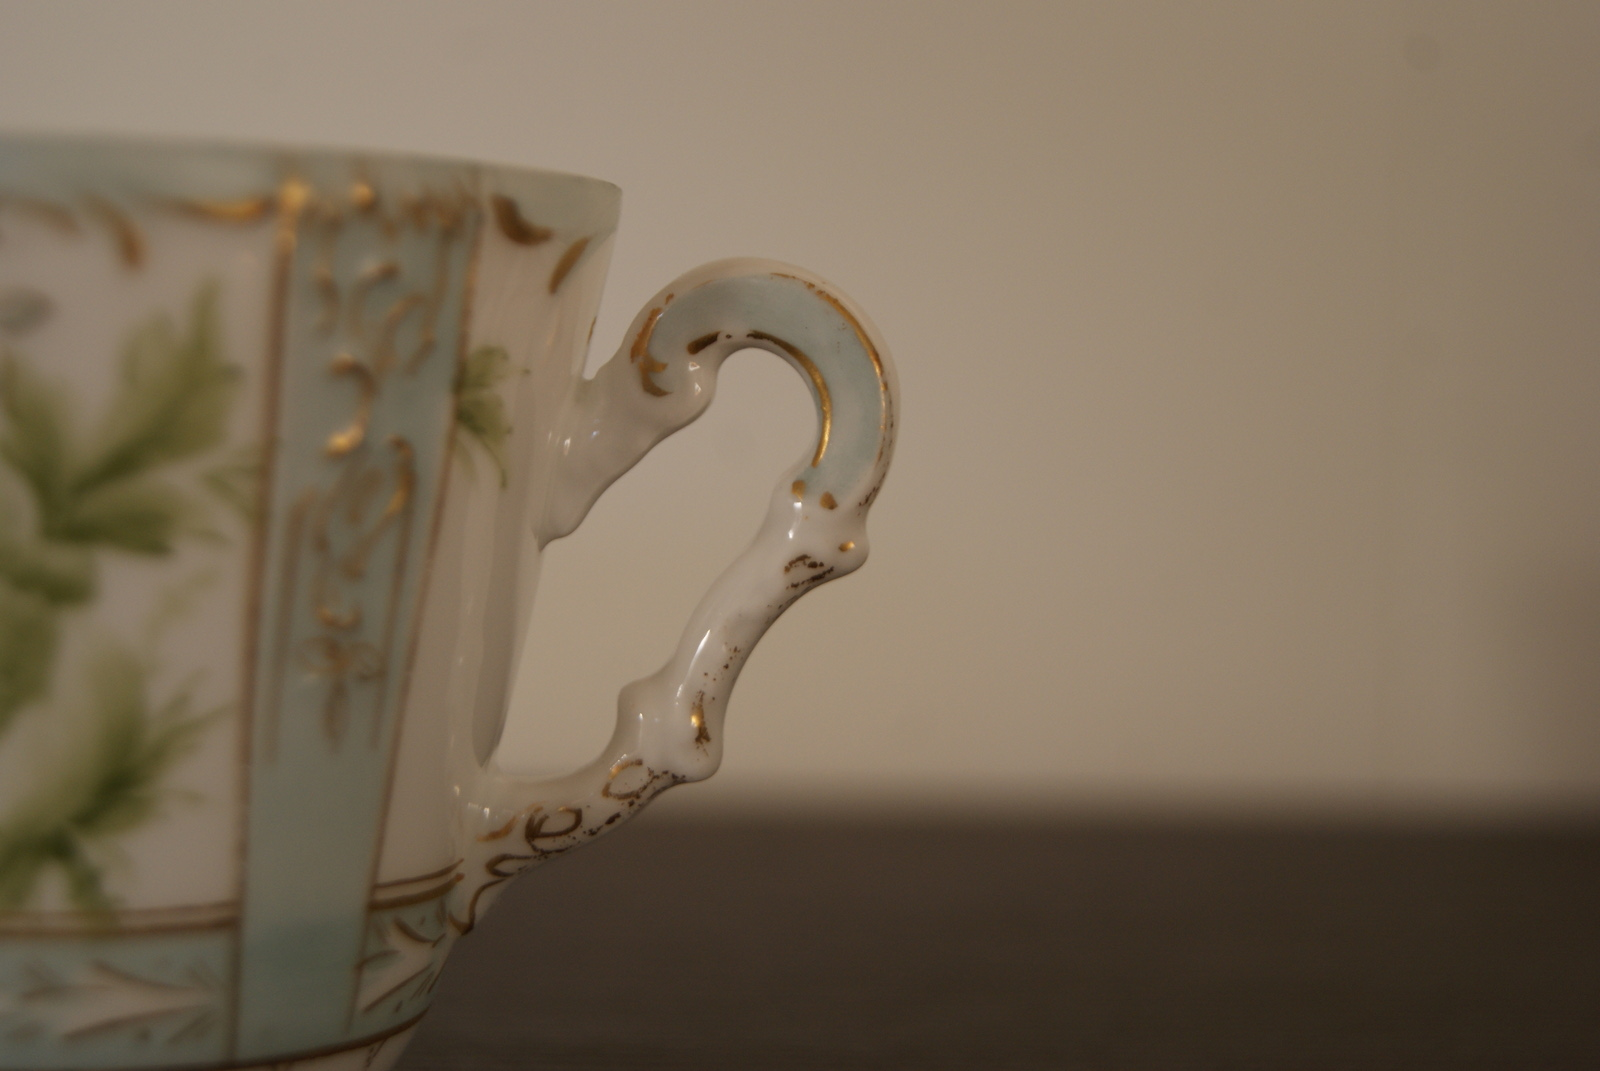 Niedersaltzbrunn Hermann Ohme cup with saucer and plate, handpainted green flowers and leaves, blue color, golden decor